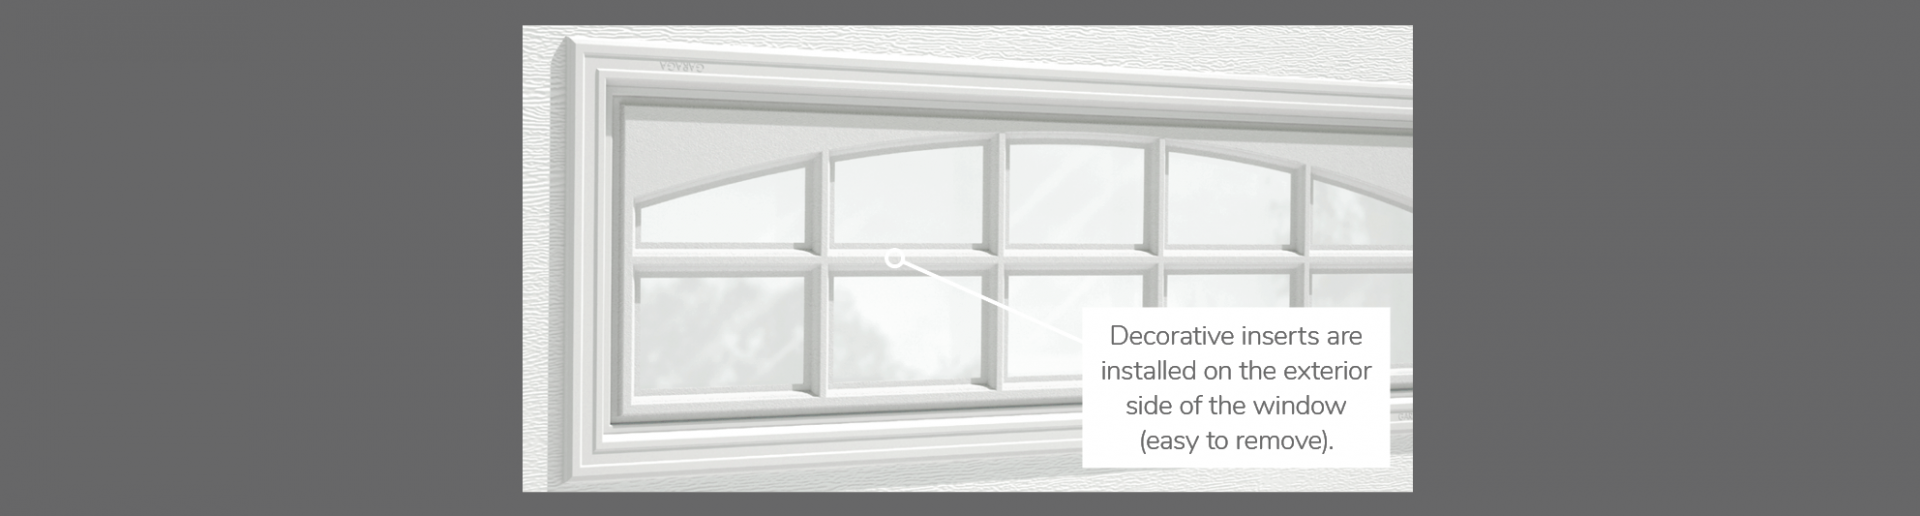 "Cascade Decorative Insert, 41"" x 16"", available for door 3 layers - Polystyrene, 2 layers - Polystyrene and Non-insulated"